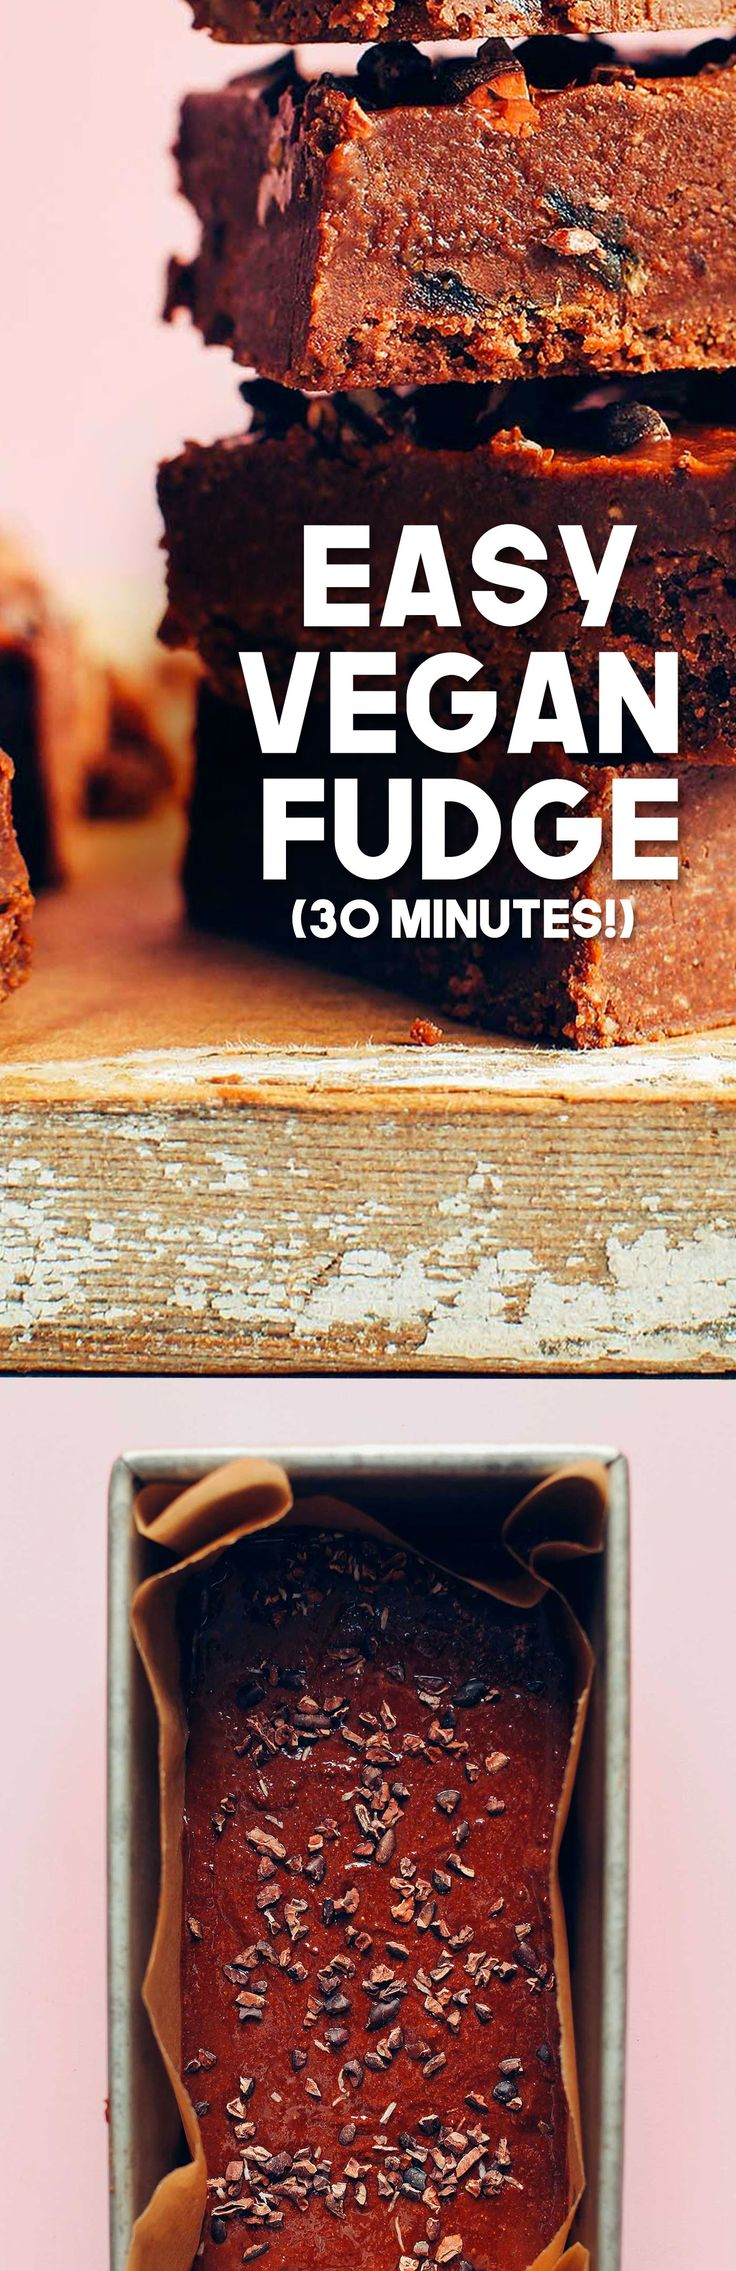 EASY Vegan Fudge that's HEALTHY! 8 ing, 30 min, SO chocolaty and rich! #minimalistbaker